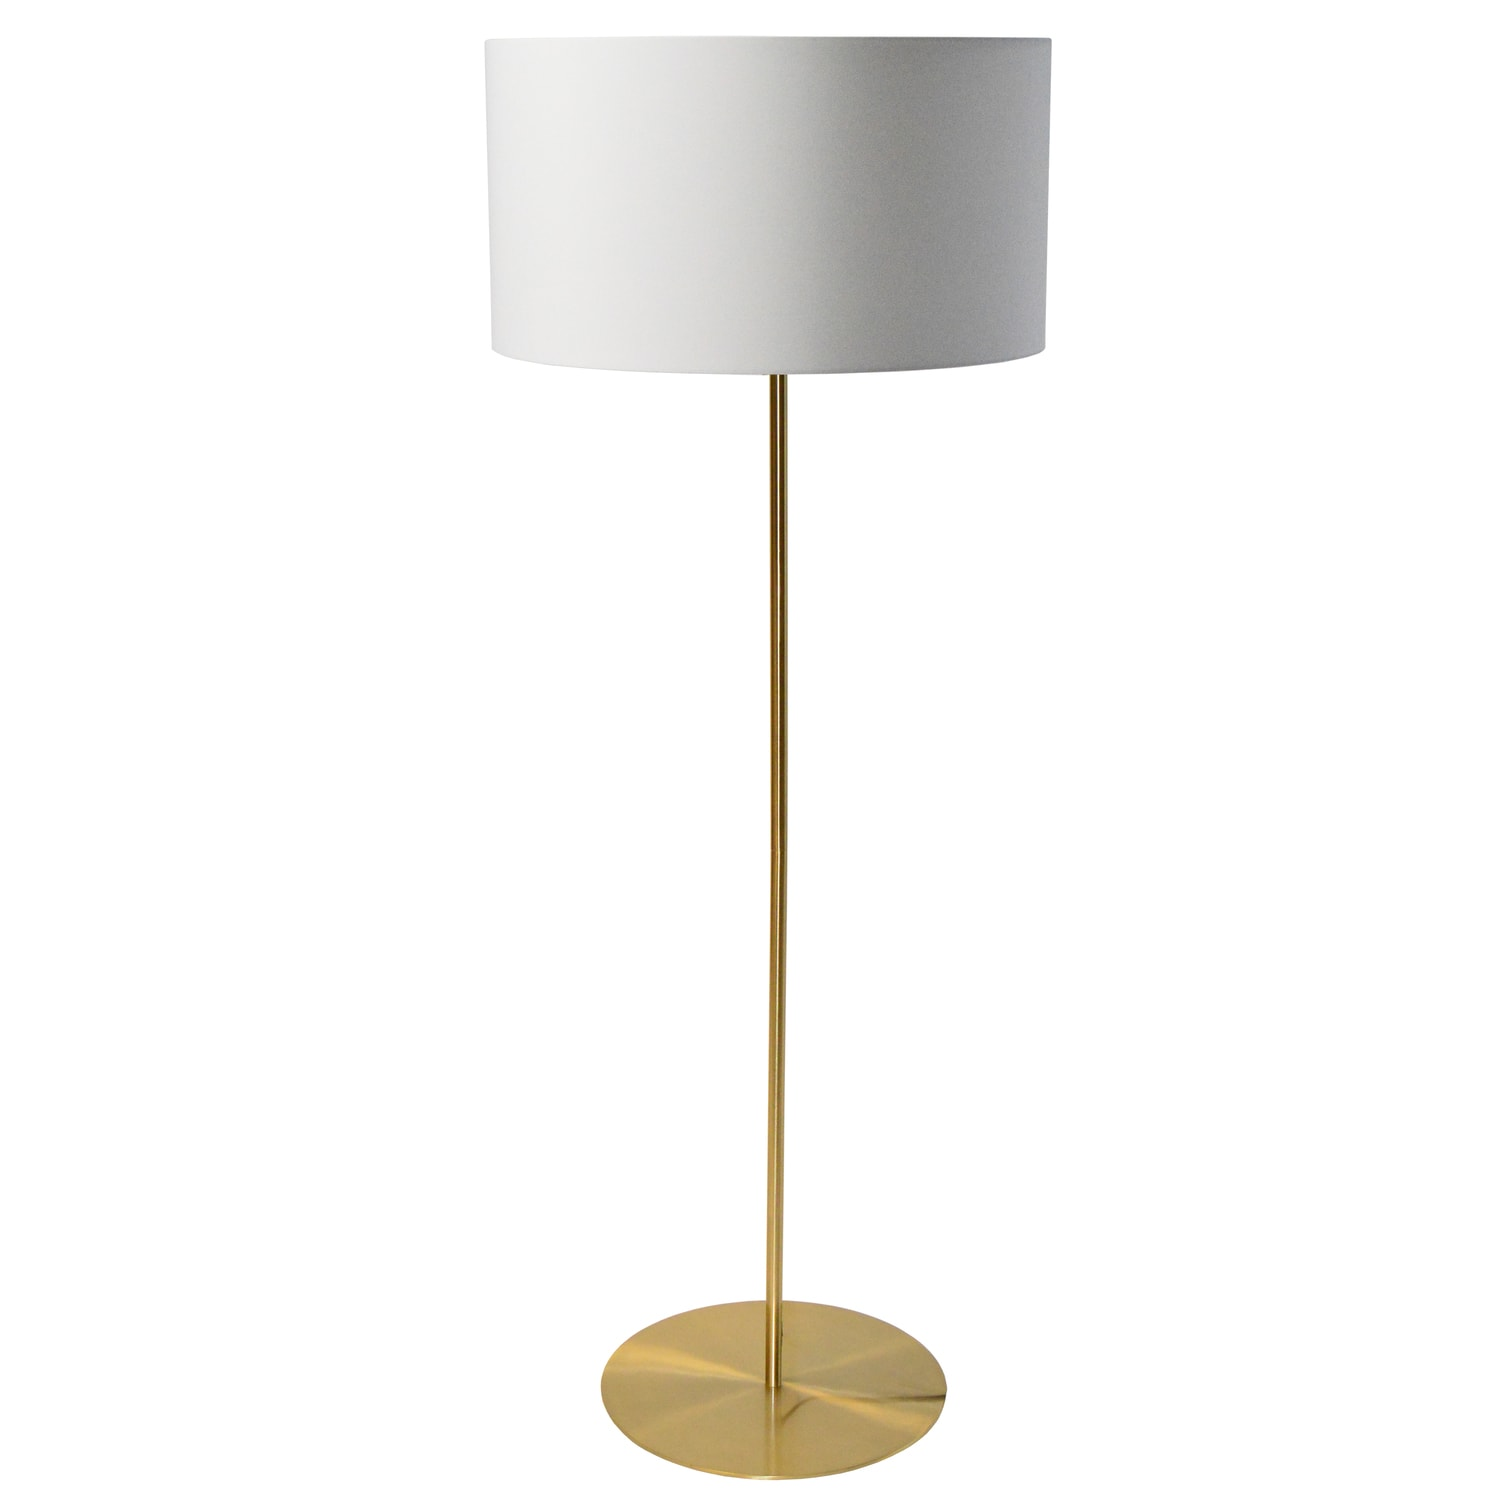 1LT Drum Floor Lamp w/ White Shade Aged Brass